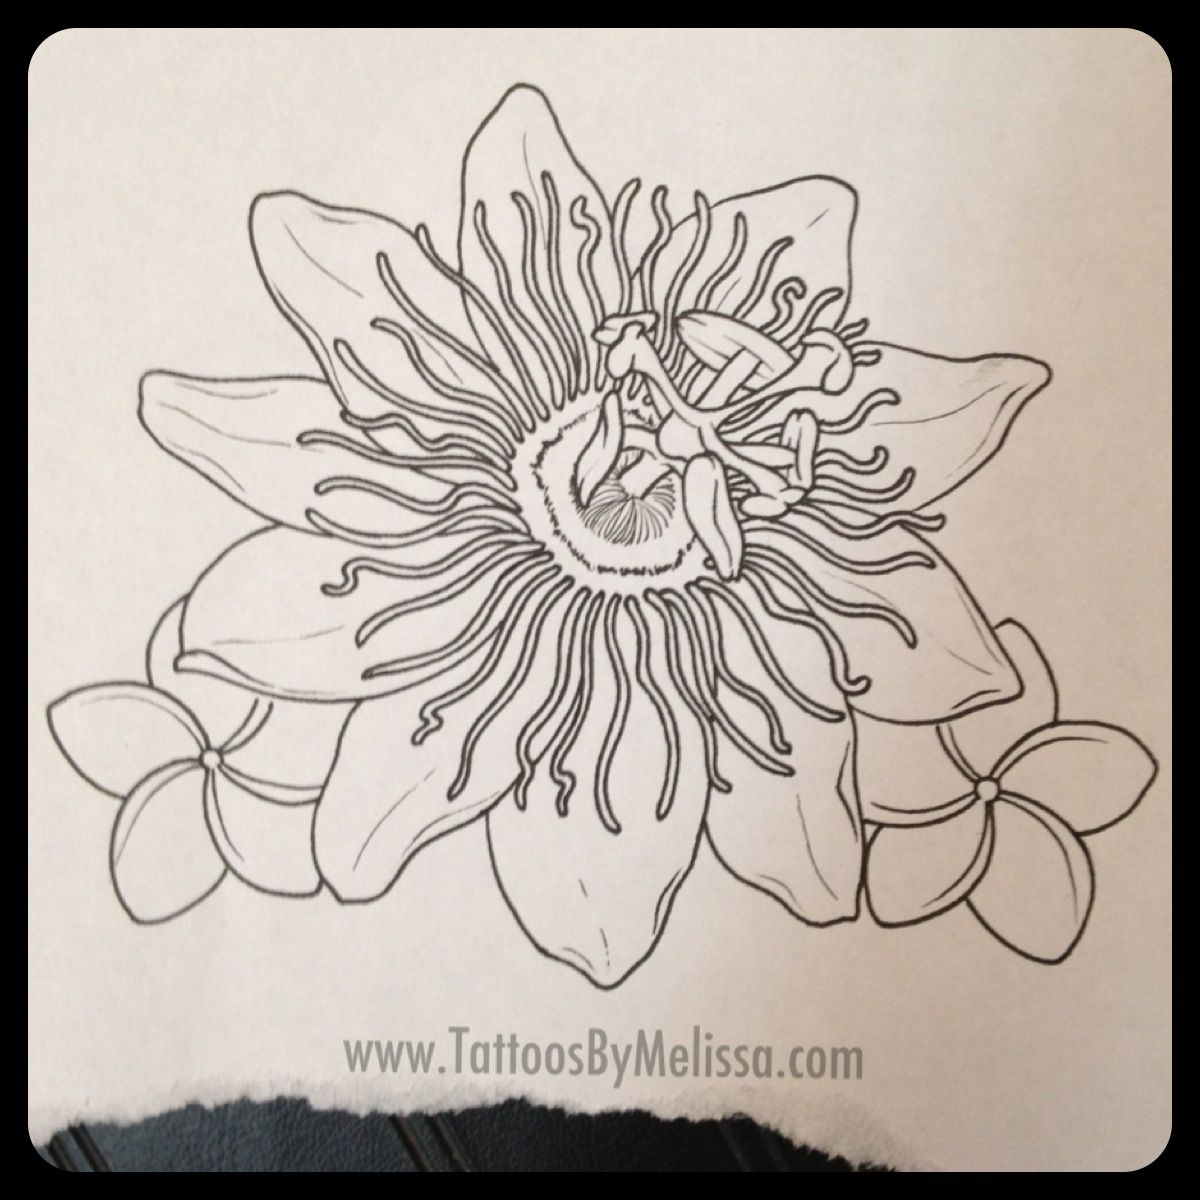 Realist Passion Flower Tattoo Flower Tattoo Drawings Passion Flower Passion Fruit Flower